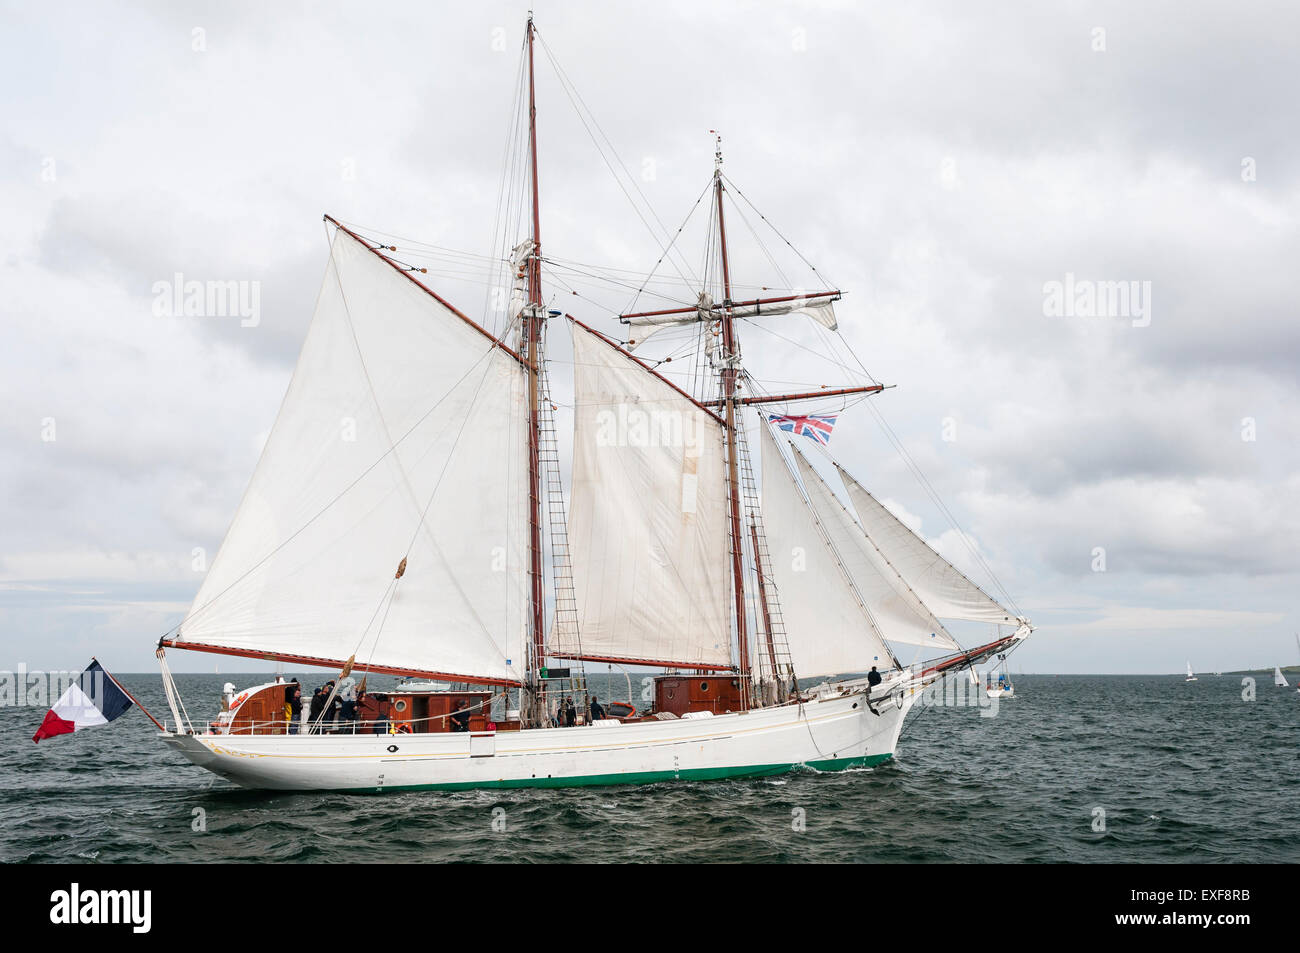 Topsail schooner sailing ship La Belle Poule leaves Belfast for the start of the 2015 Tall Ships race - Stock Image